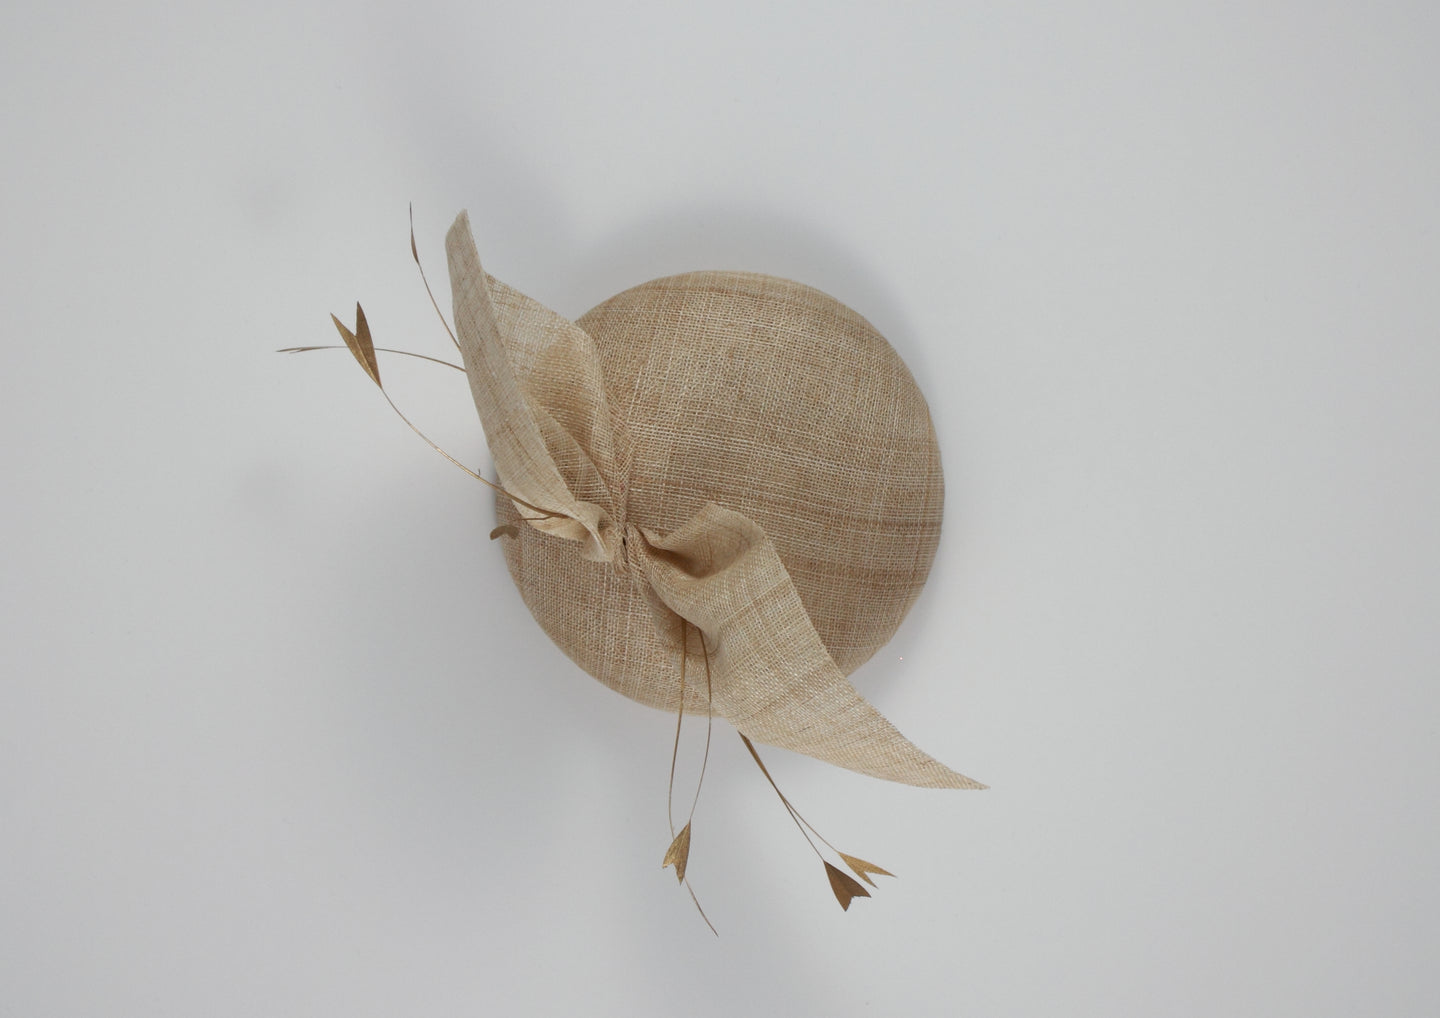 Beige / Natural straw hat with gold feathers. Suitable for weddings, special occasions and race days. A popular straw style, our signature fun and timeless hat suits most face shapes and can be made in bespoke colours upon request.